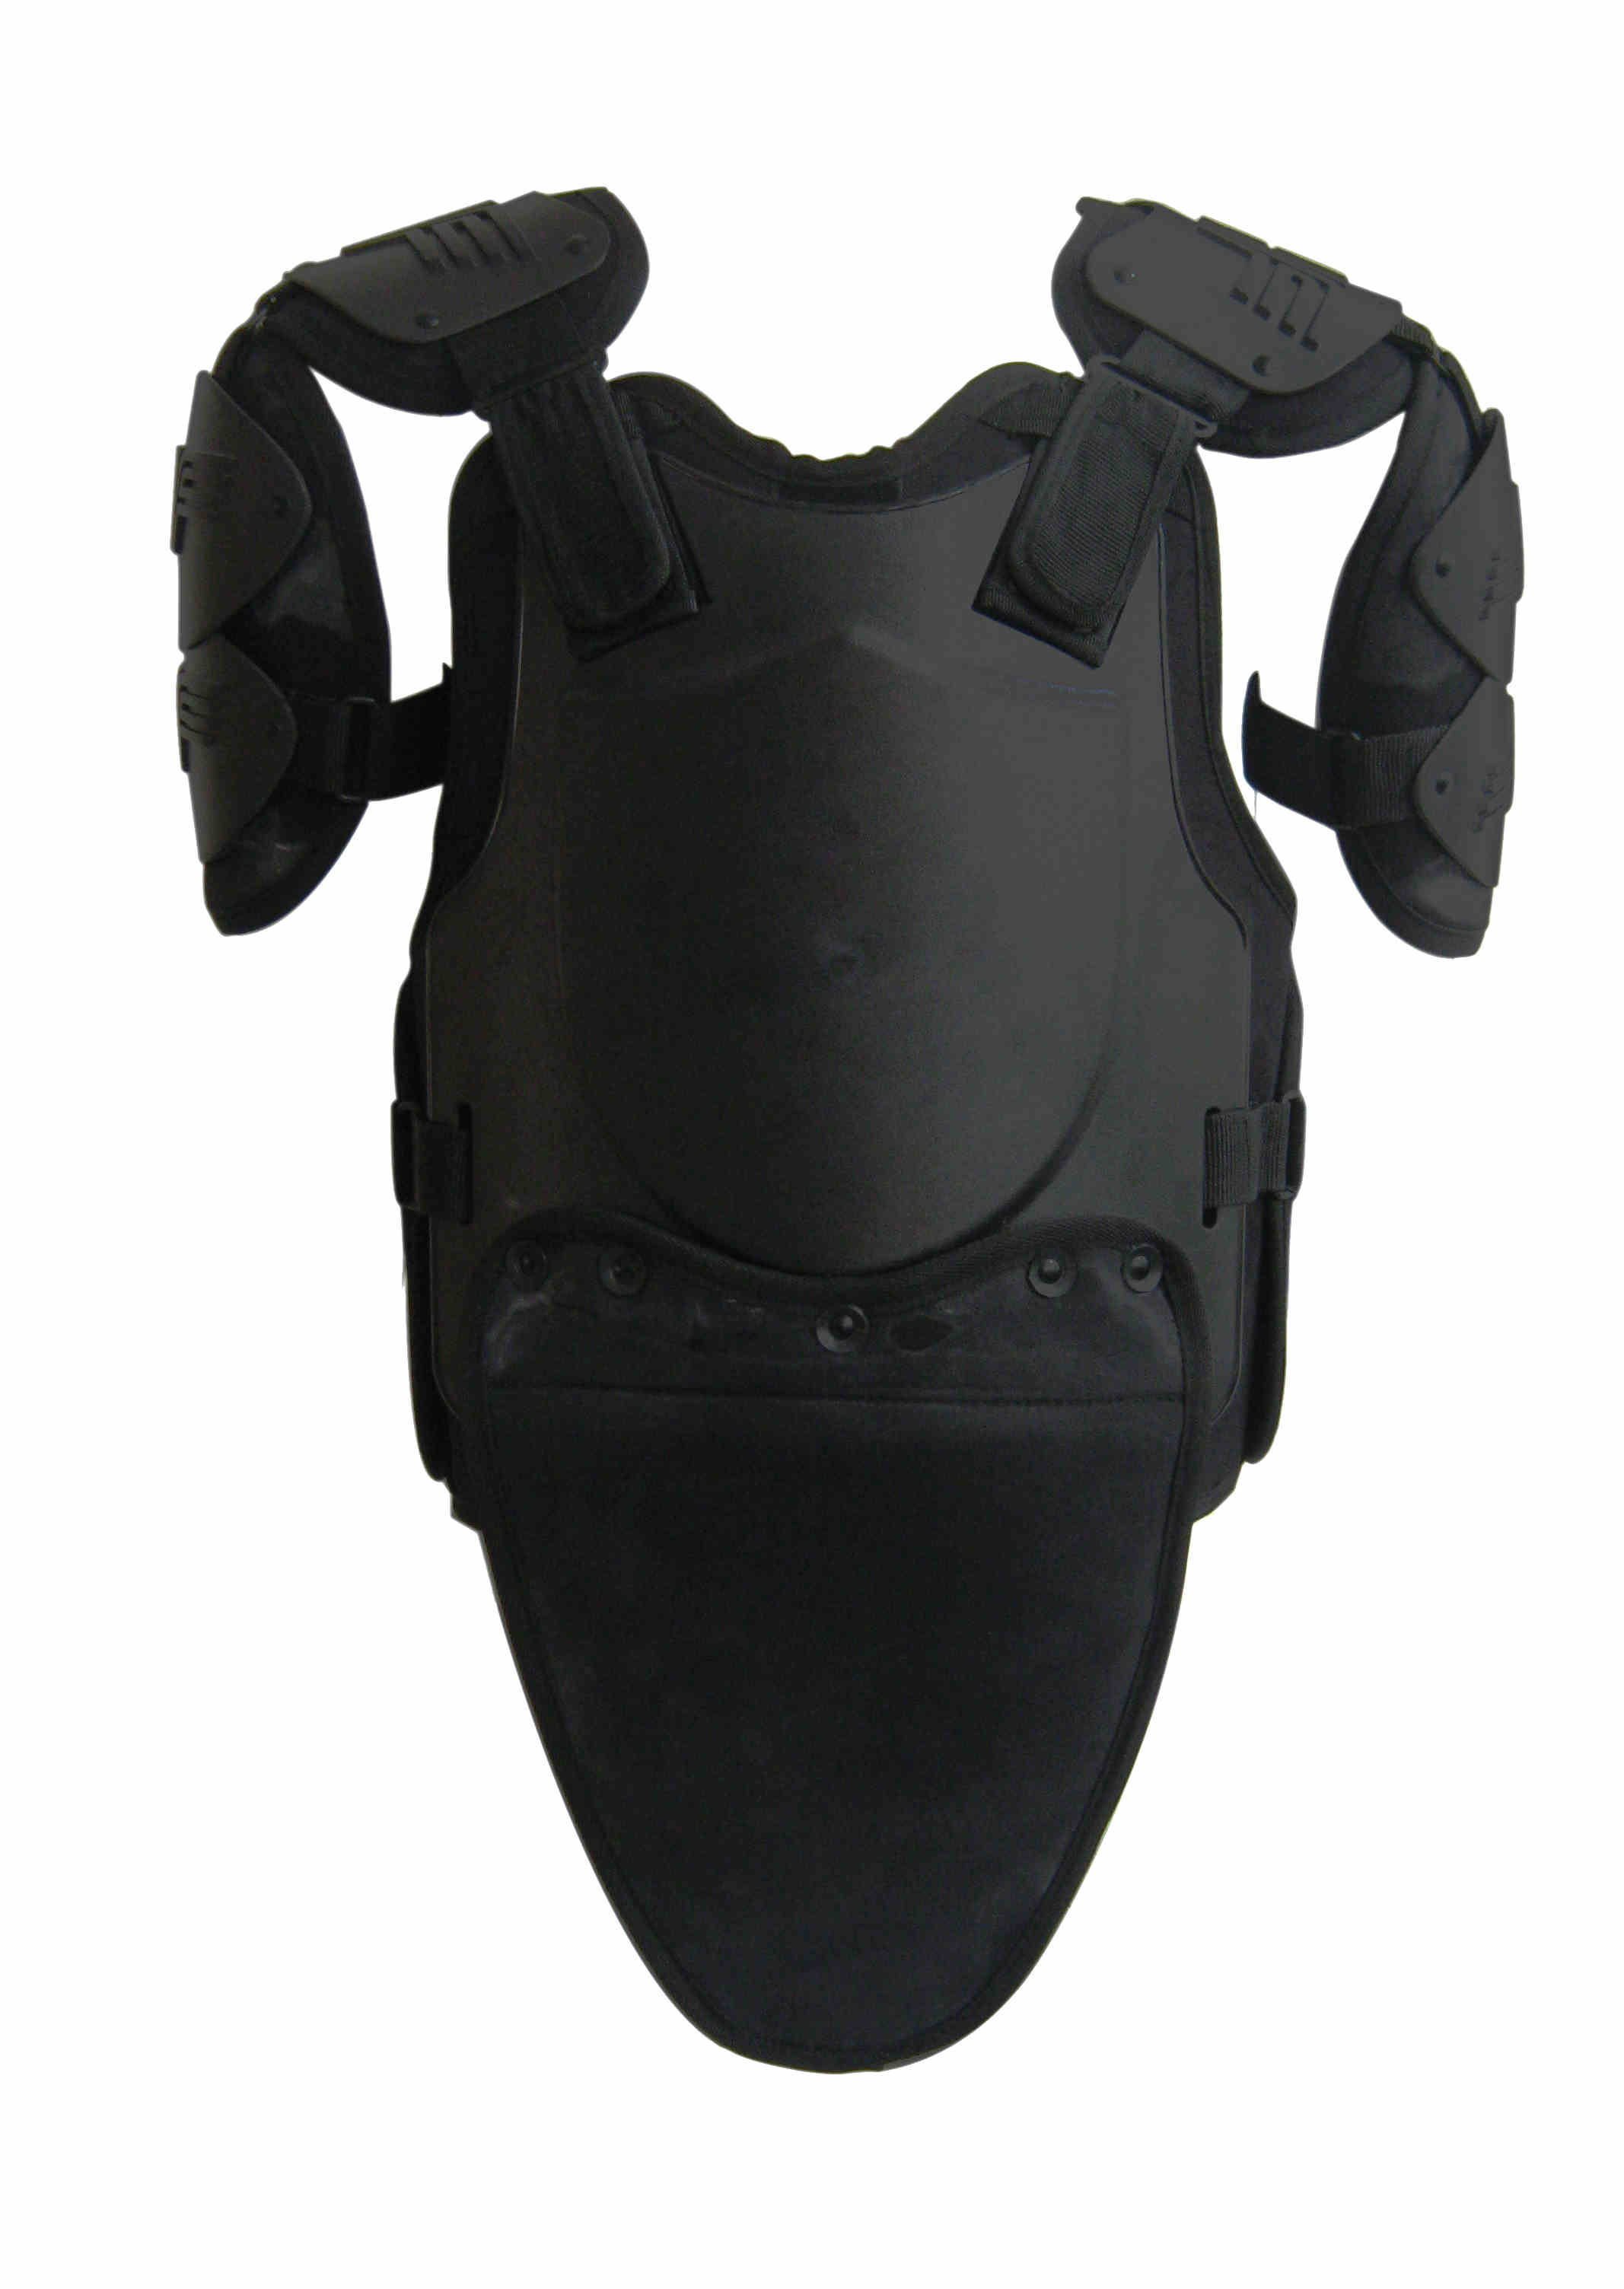 Kl-105 Anti Riot Suit for Police